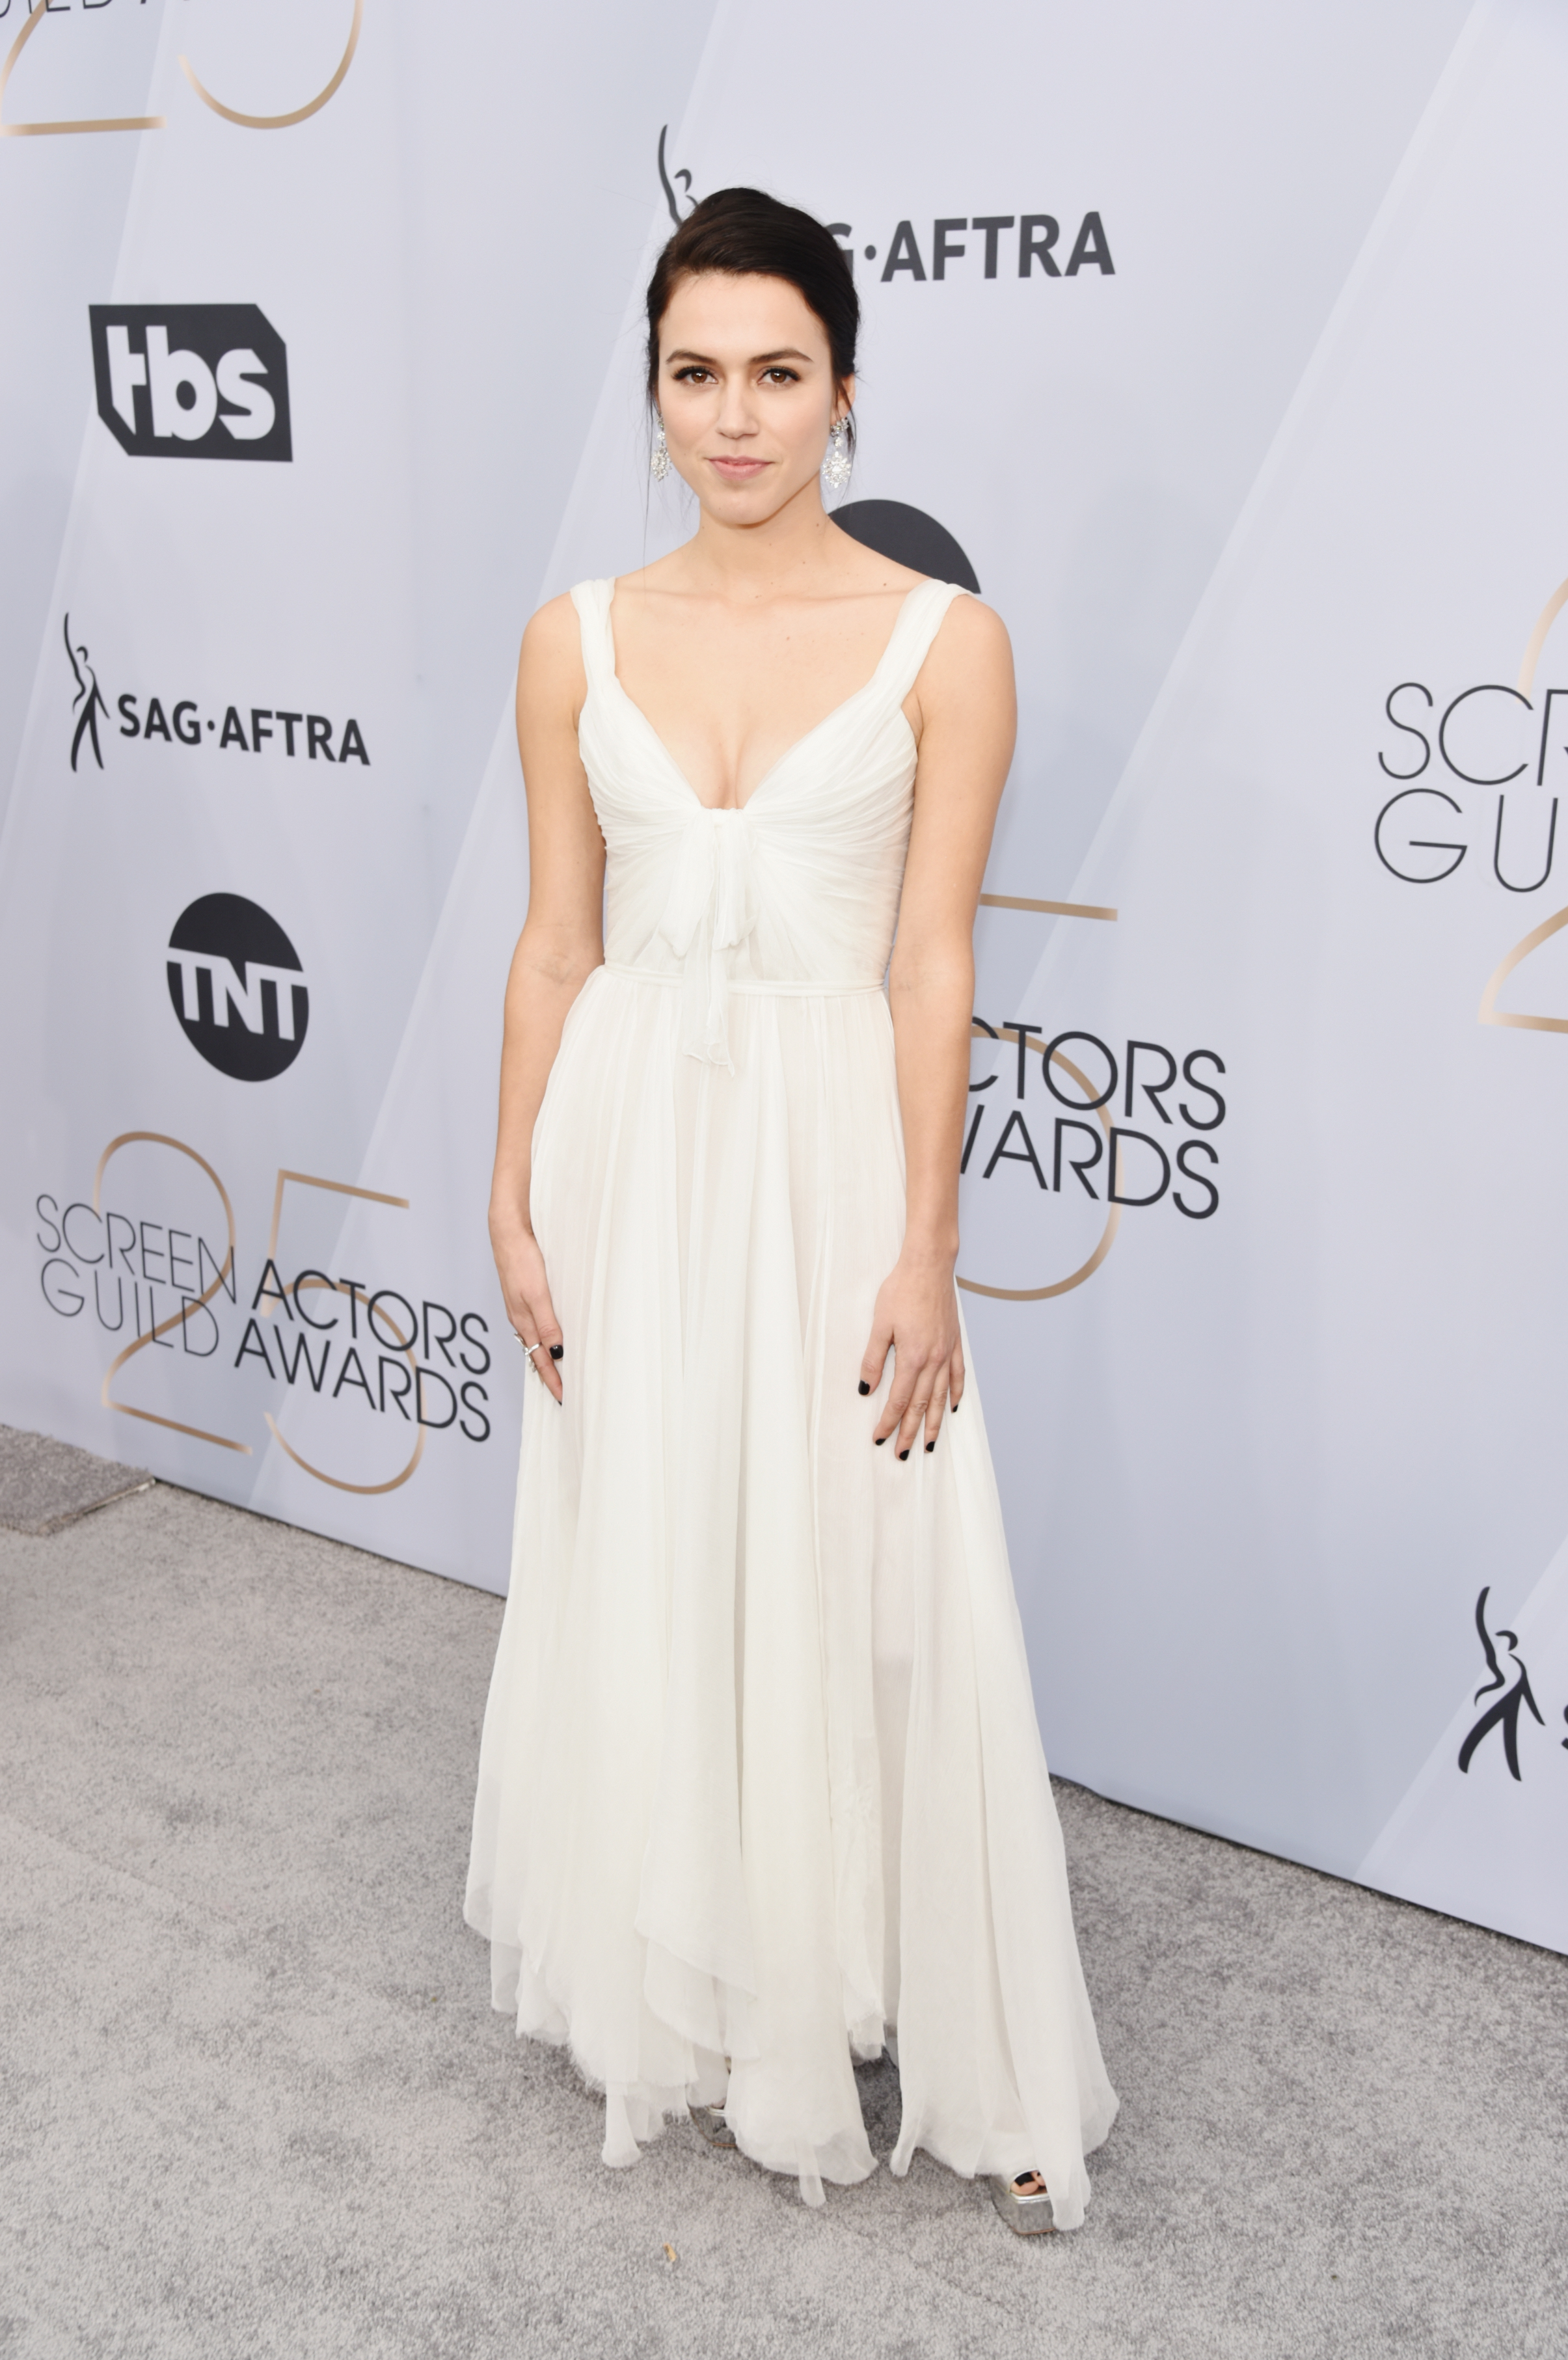 Nina Kiri for the 2019 Screen Actors Guild Awards / Styled by Natalie Hoselton